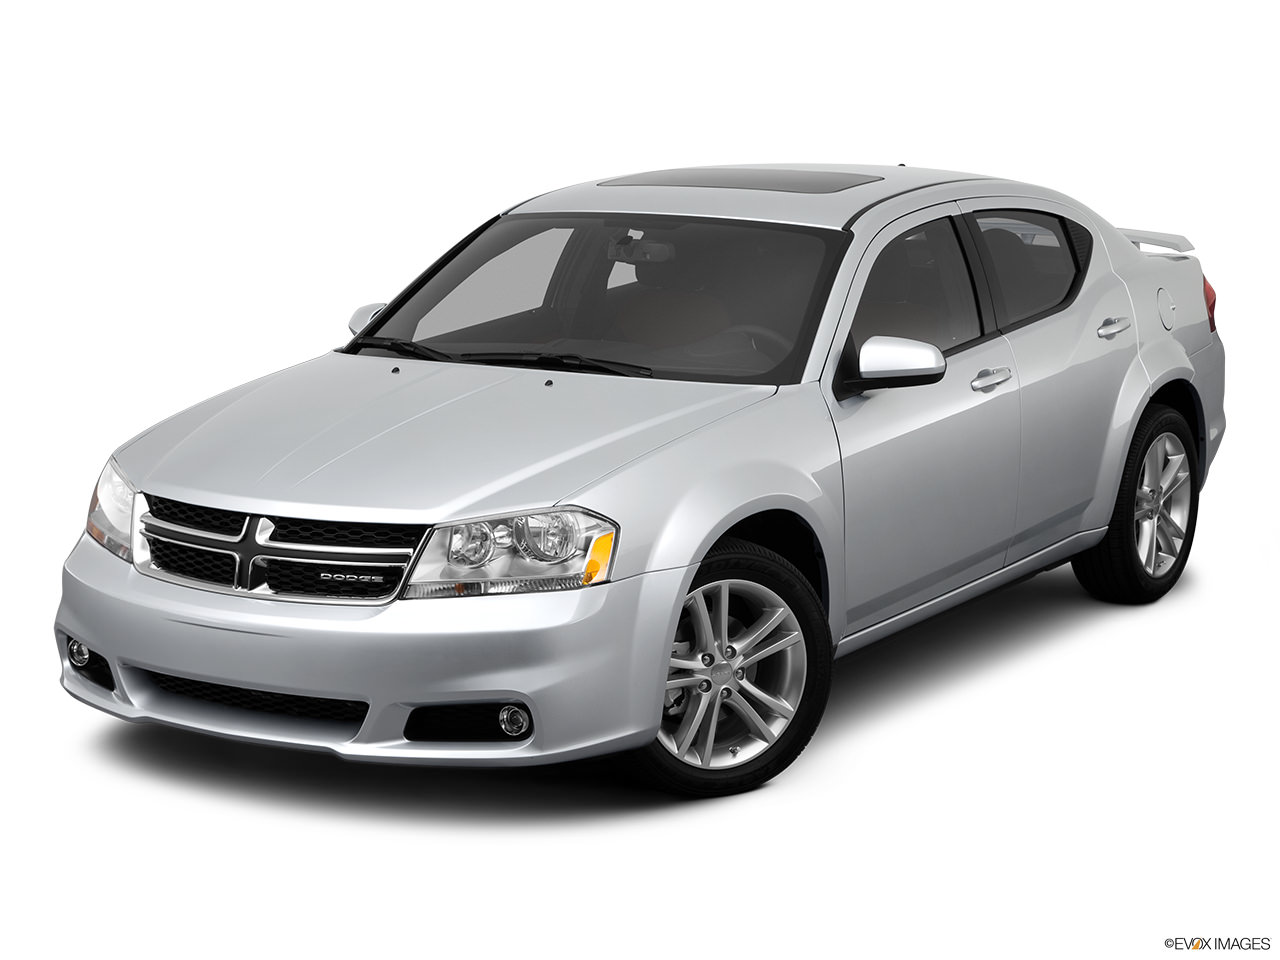 Dodge Avenger: Understanding the features of your vehicle